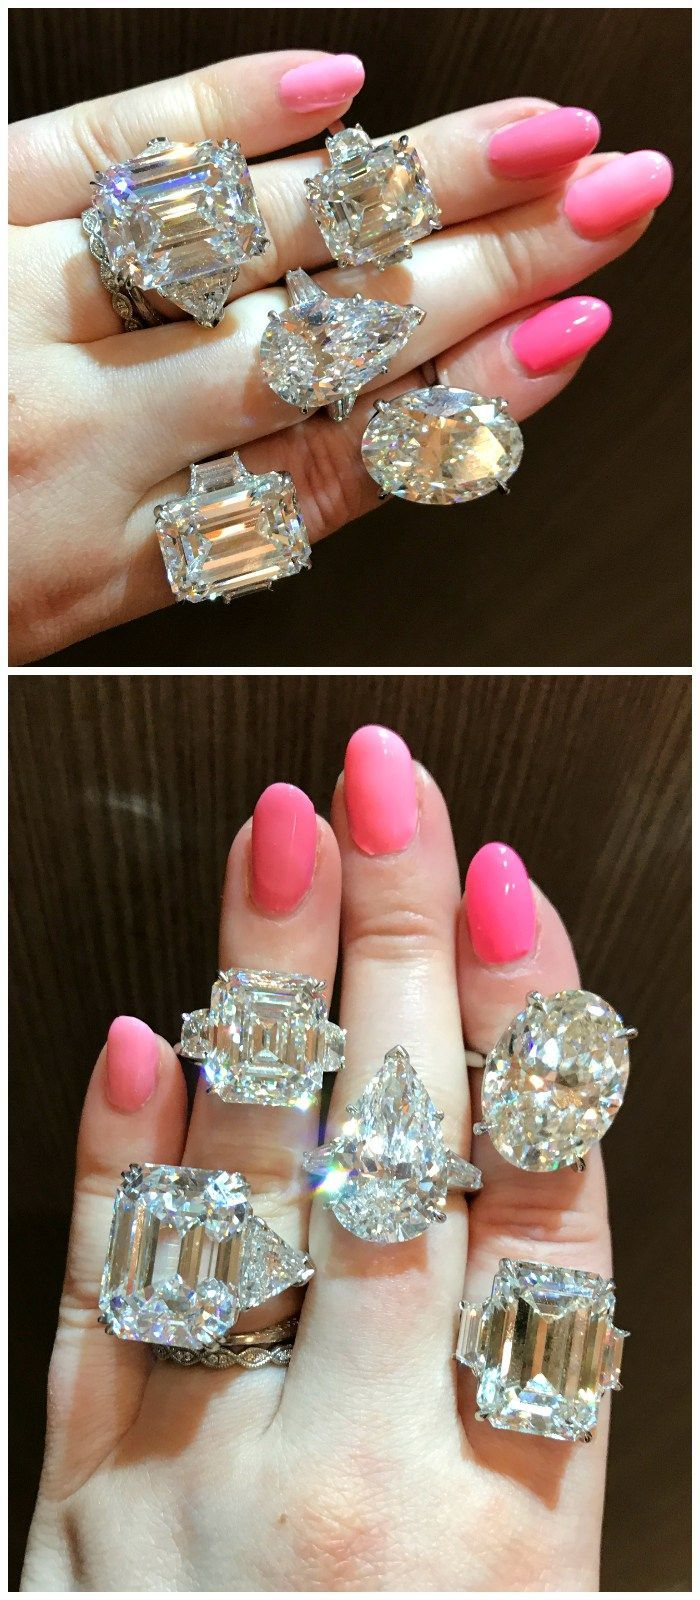 44 best DOUBLE HALO RINGS images on Pinterest | Double halo ...